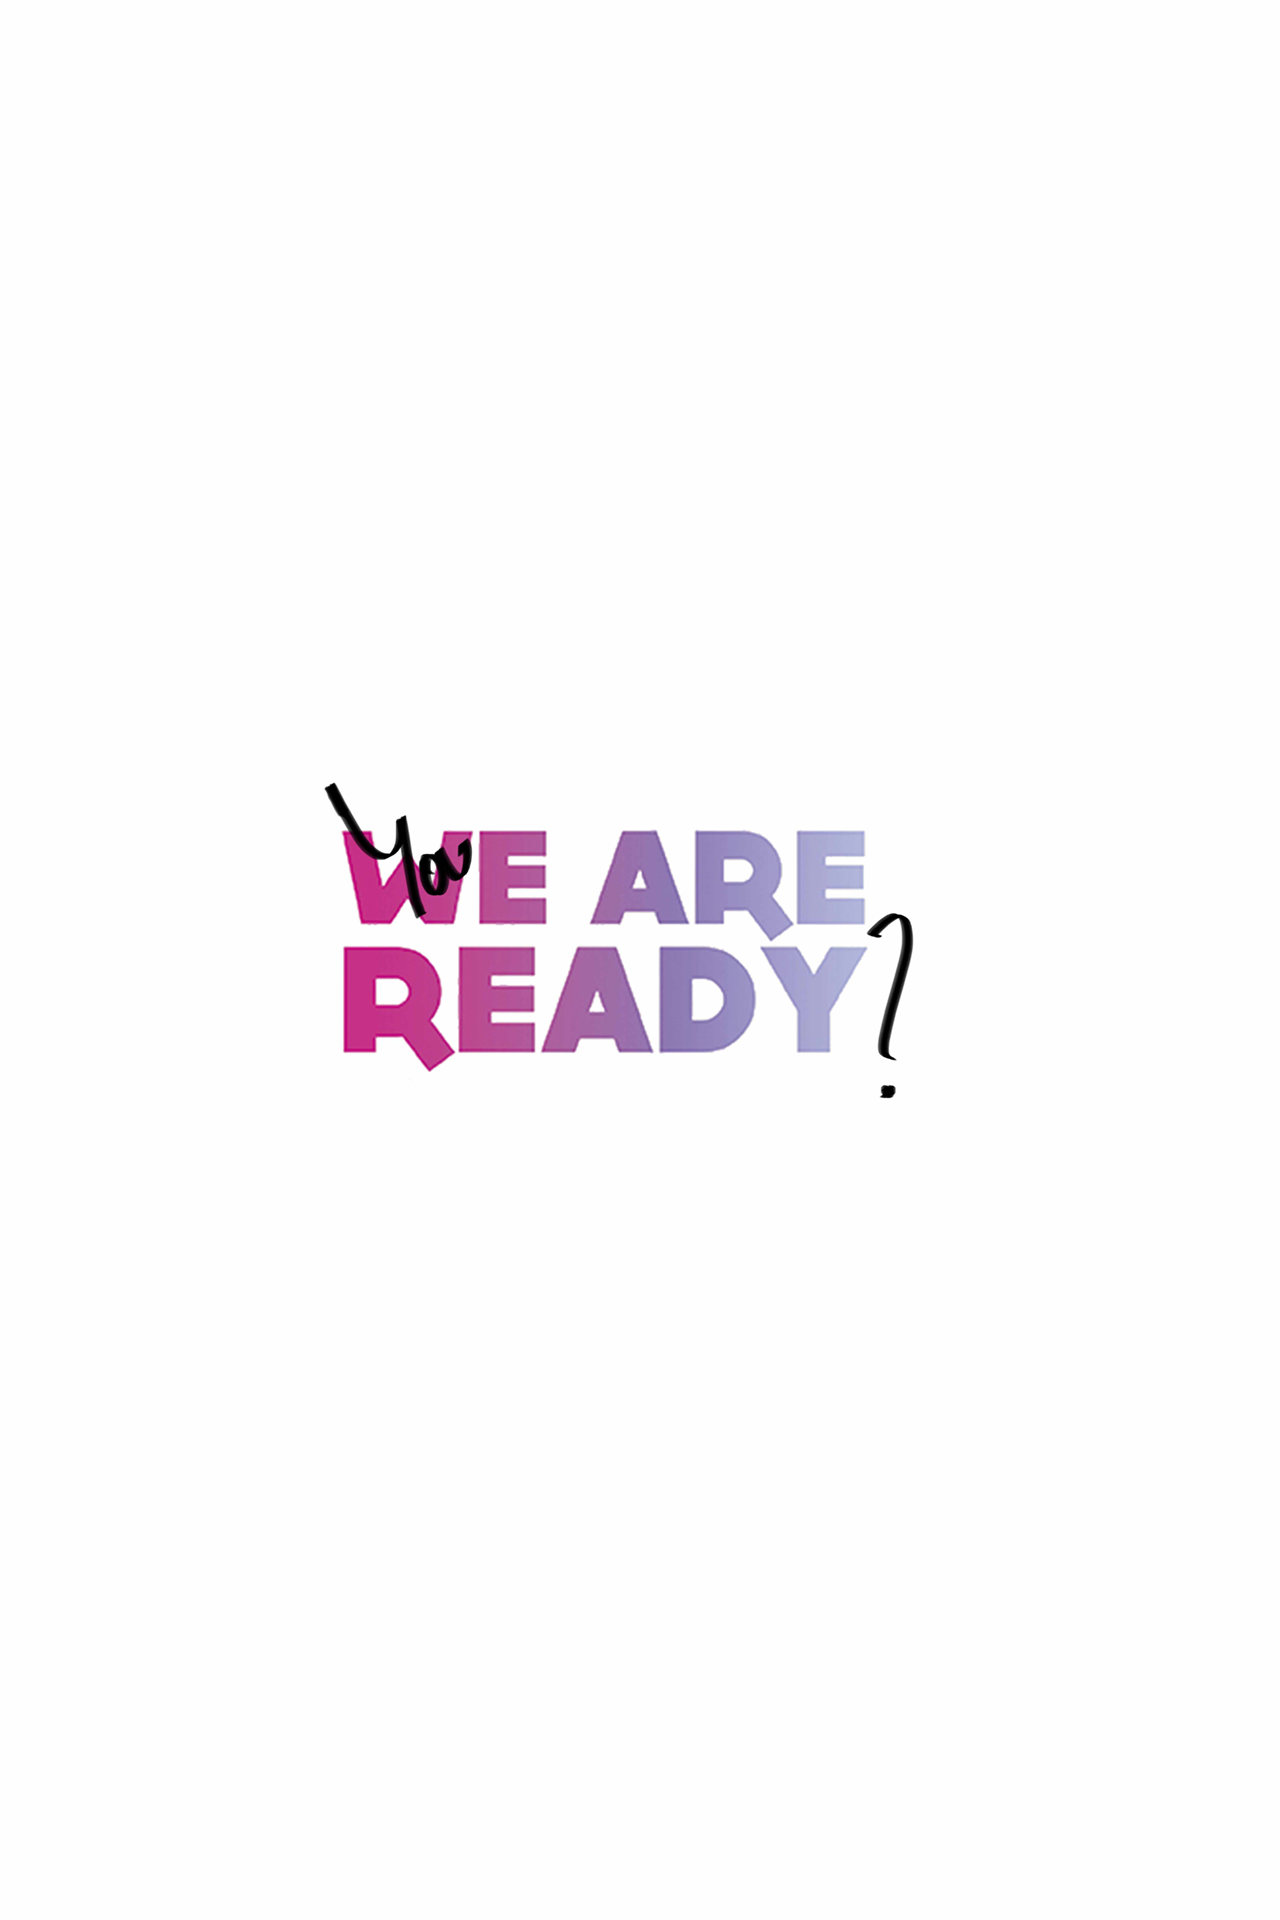 YOU ARE READY? – ¿ESTÁS LISTO?